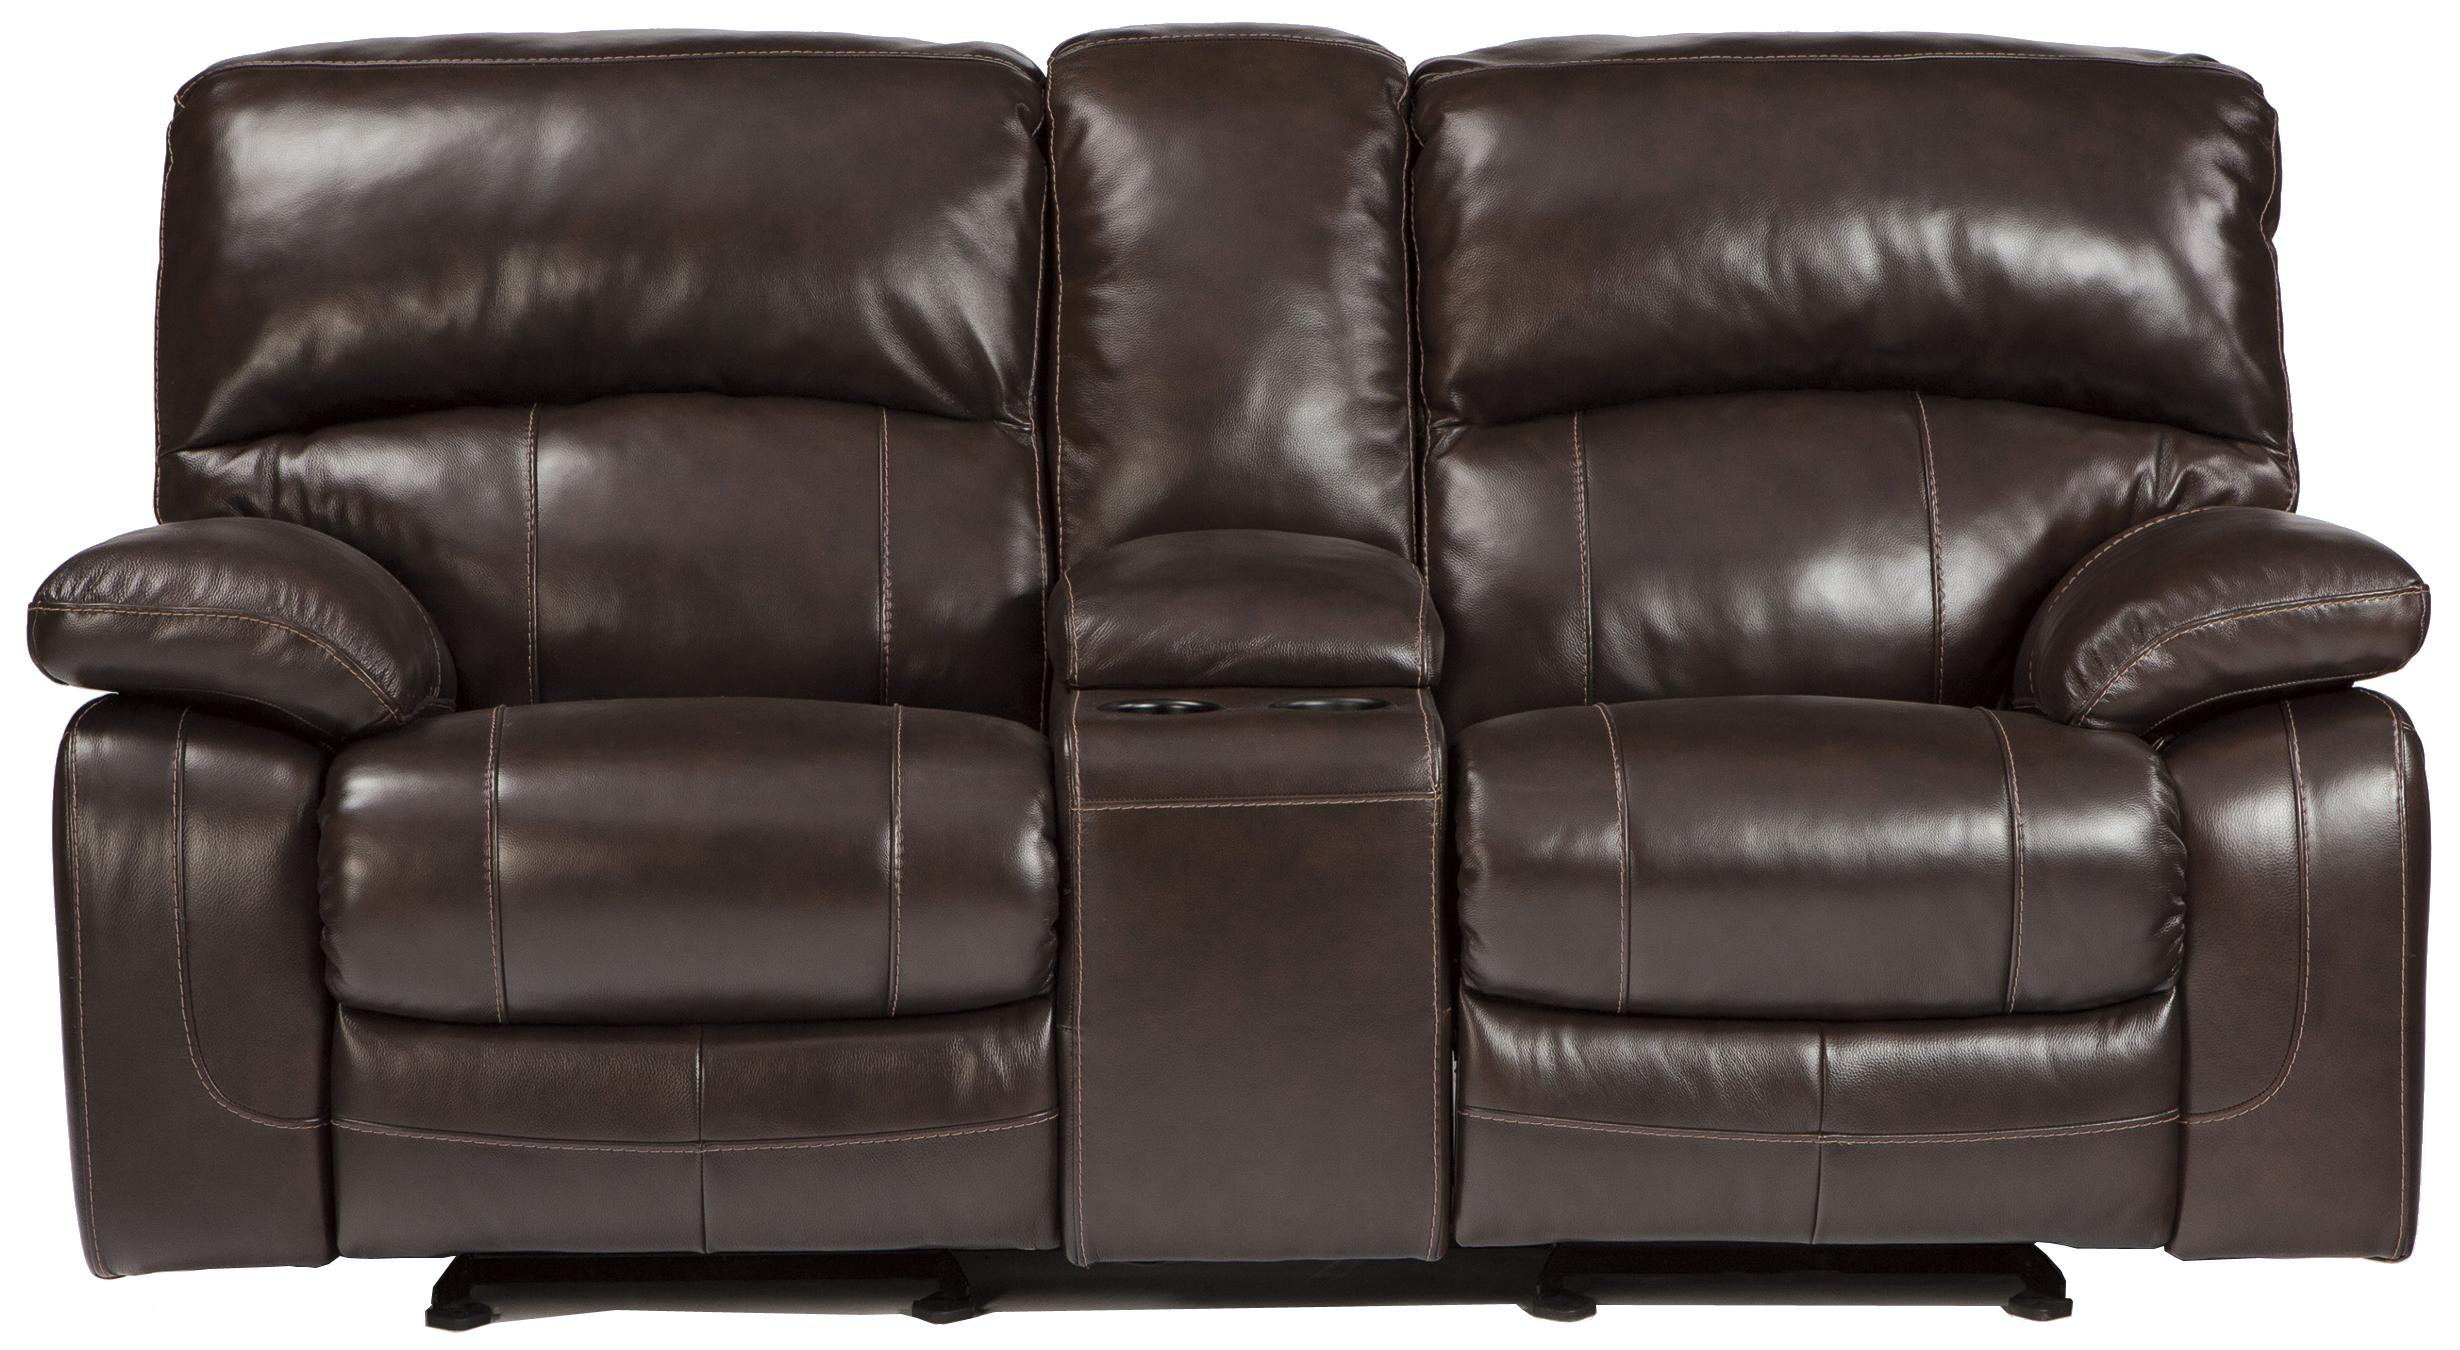 marlow reclining sofa loveseat and chair set covers uk signature design by ashley damacio dark brown leather